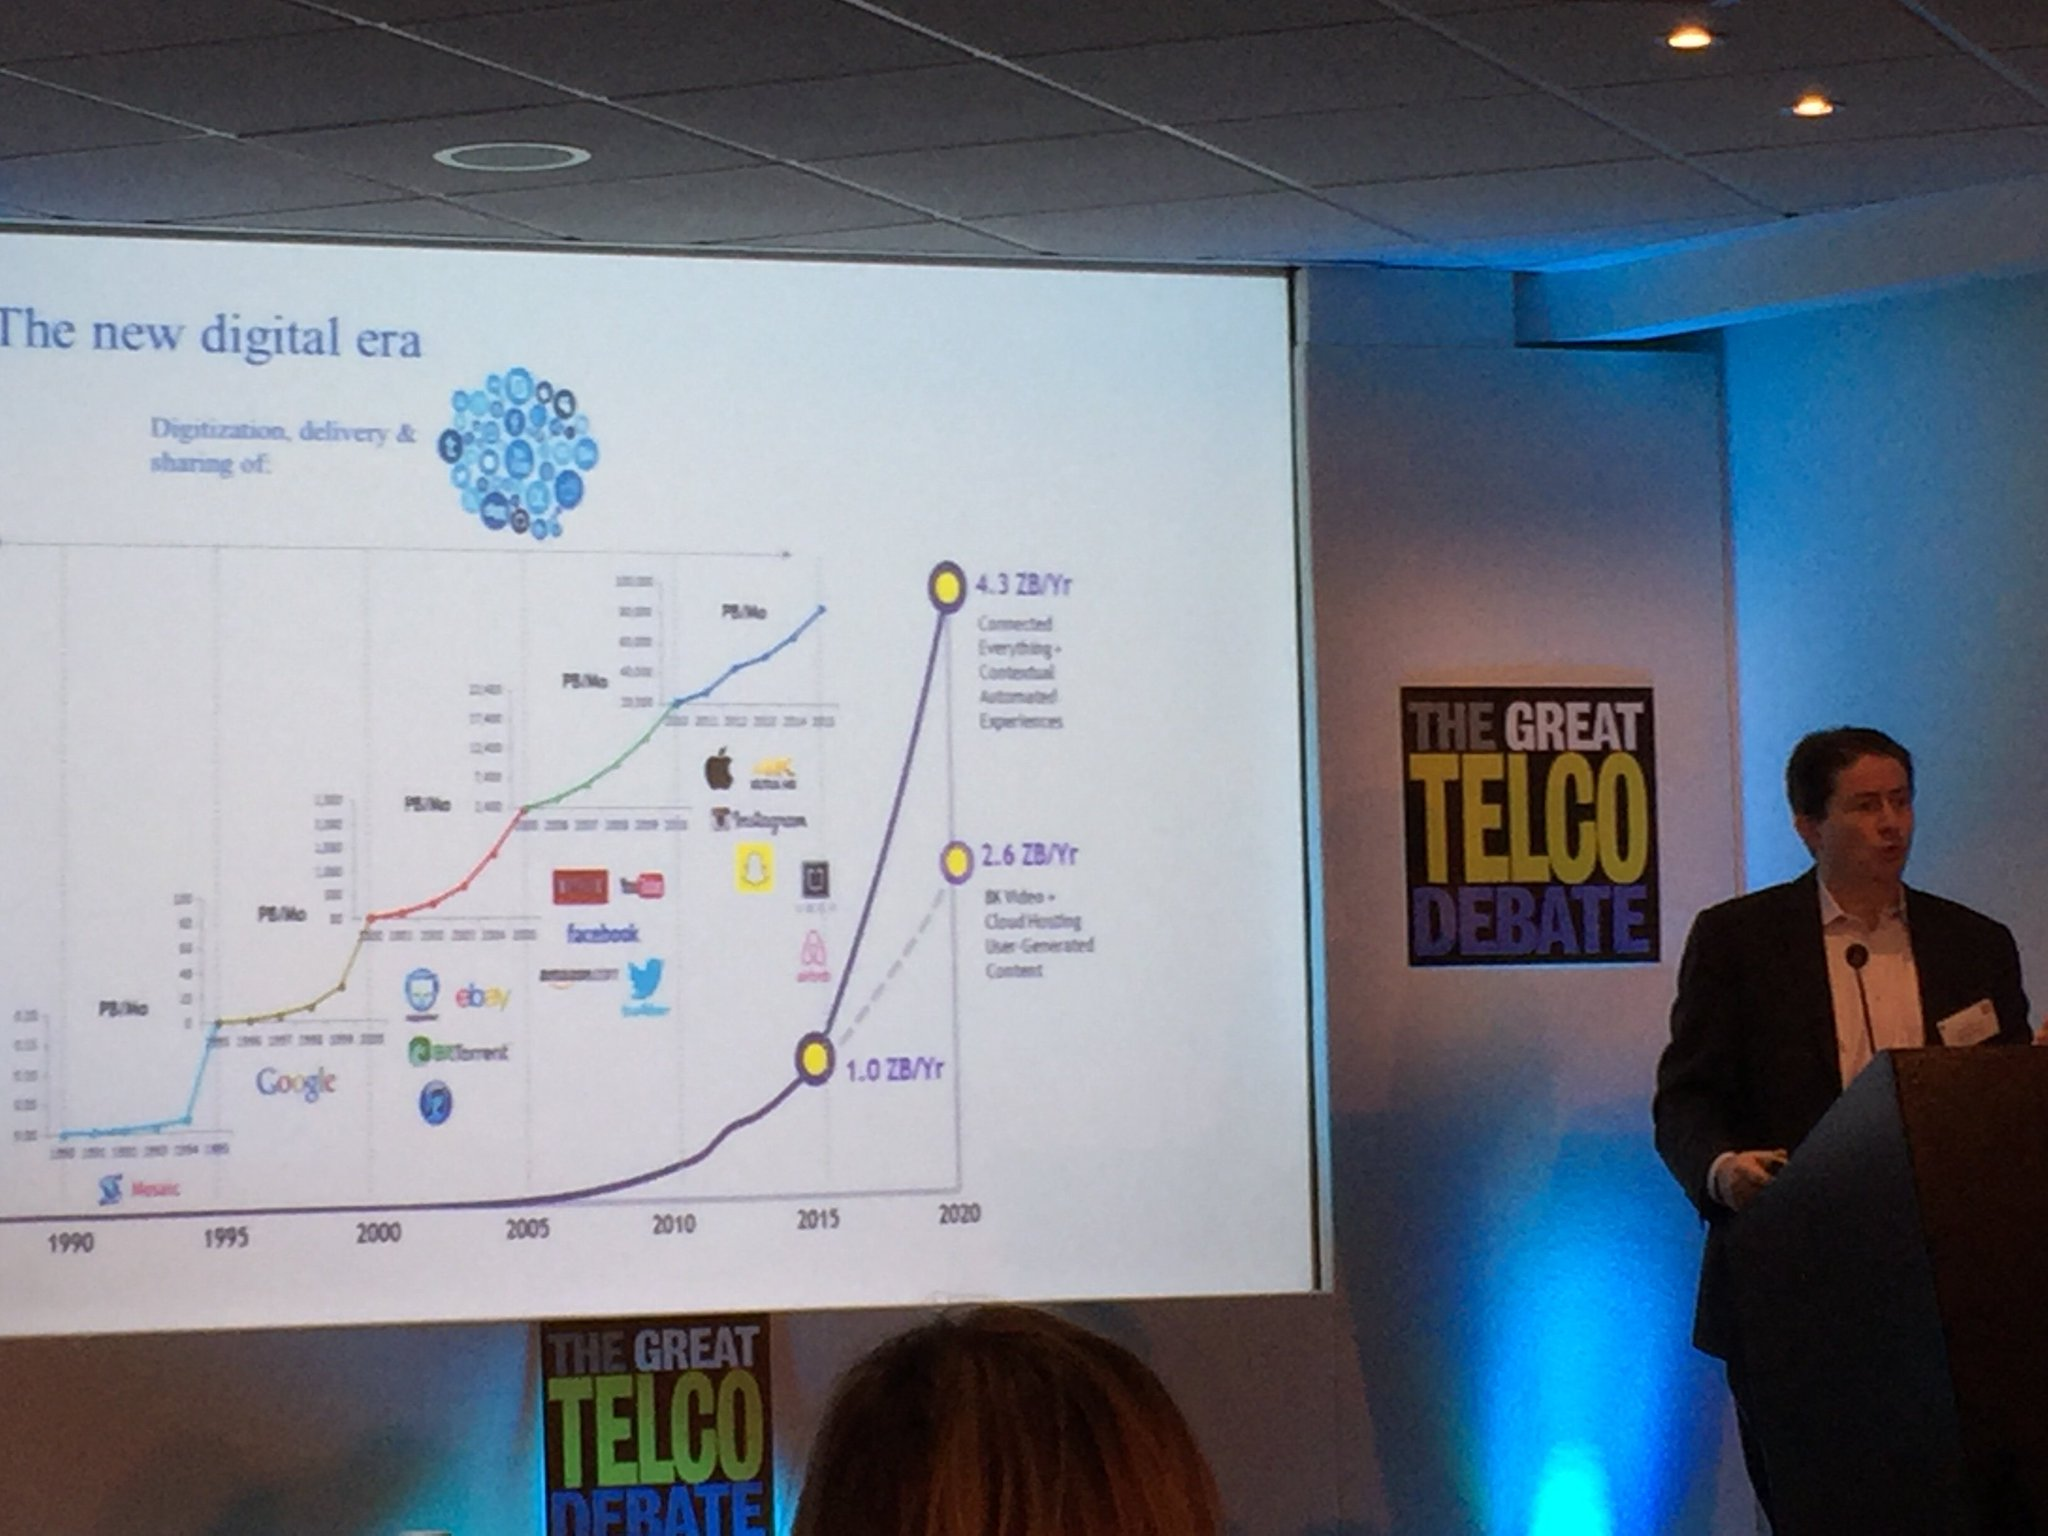 At #GTD2016 @MarcusWeldon, CTO @nokia and President of Bell Labs, argues for the debate (of building optimal dig platform) @TheTelcoDebate https://t.co/xeL89ZVSM9